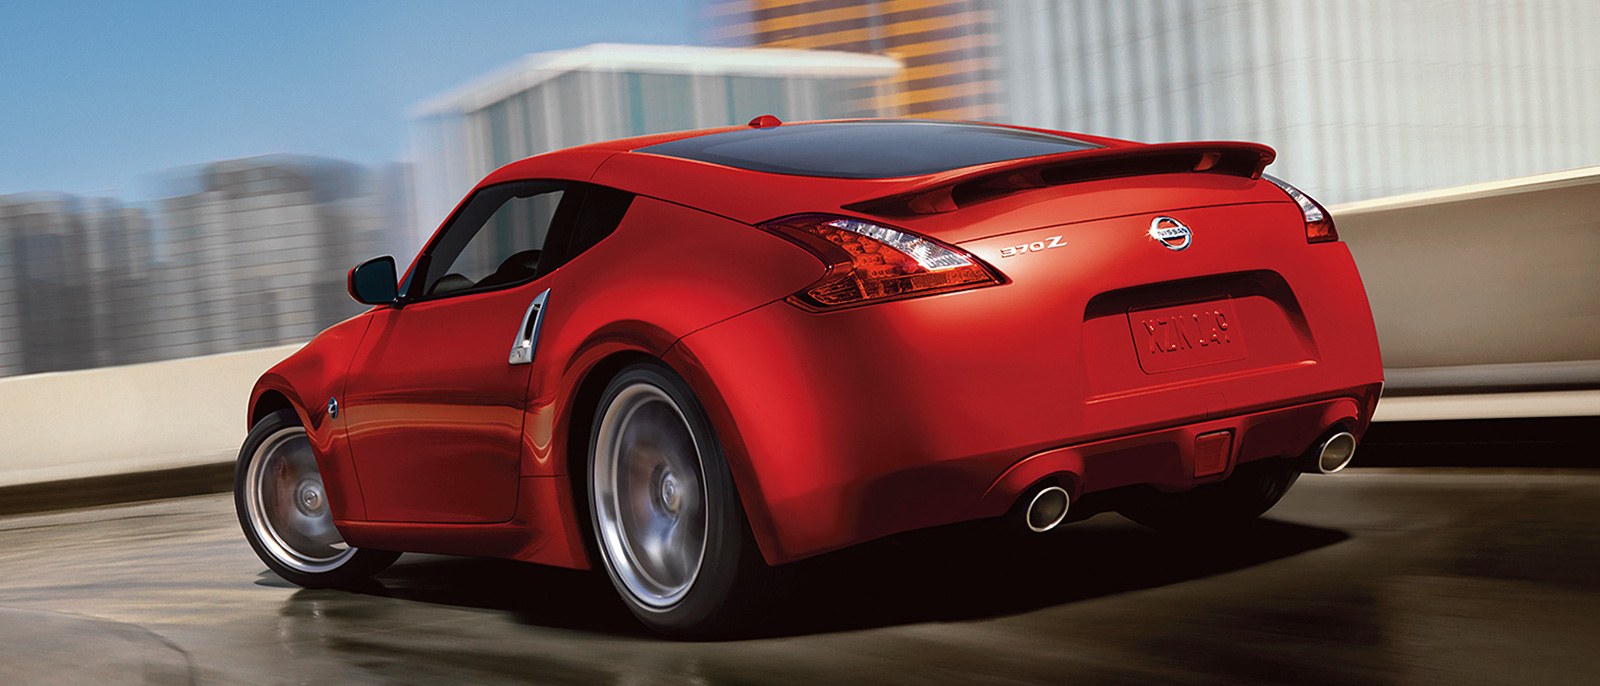 2015 Nissan 370Z back view